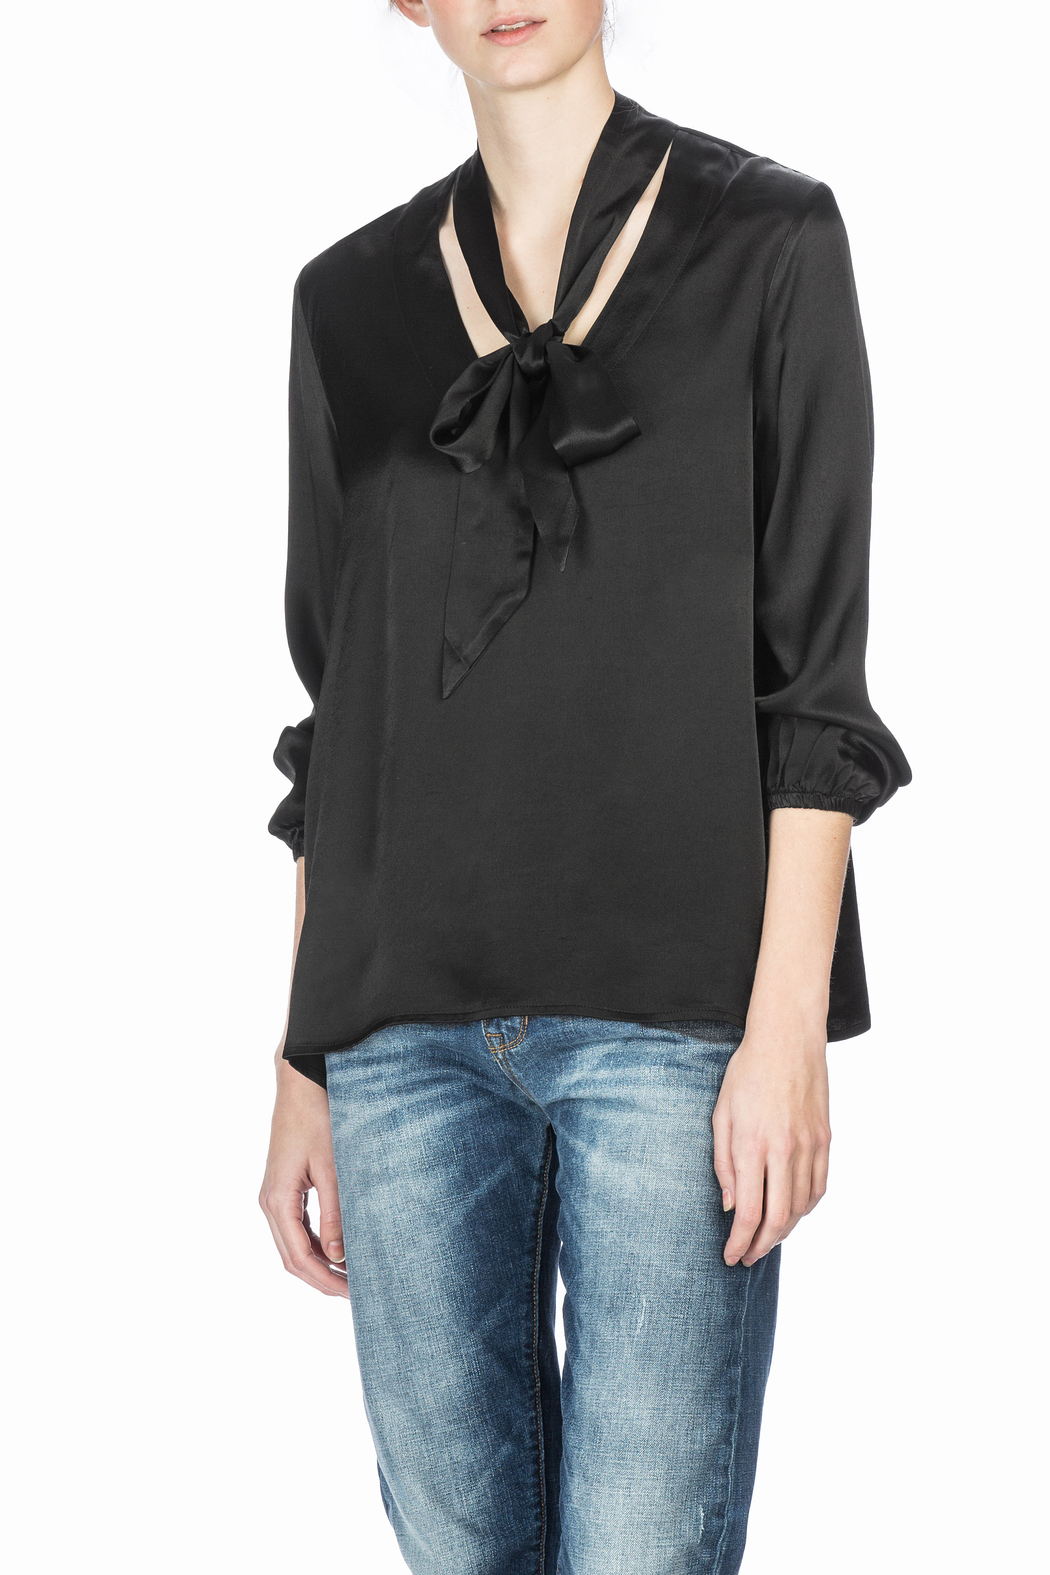 Lilla P Tie Neck Blouse - Front Cropped Image